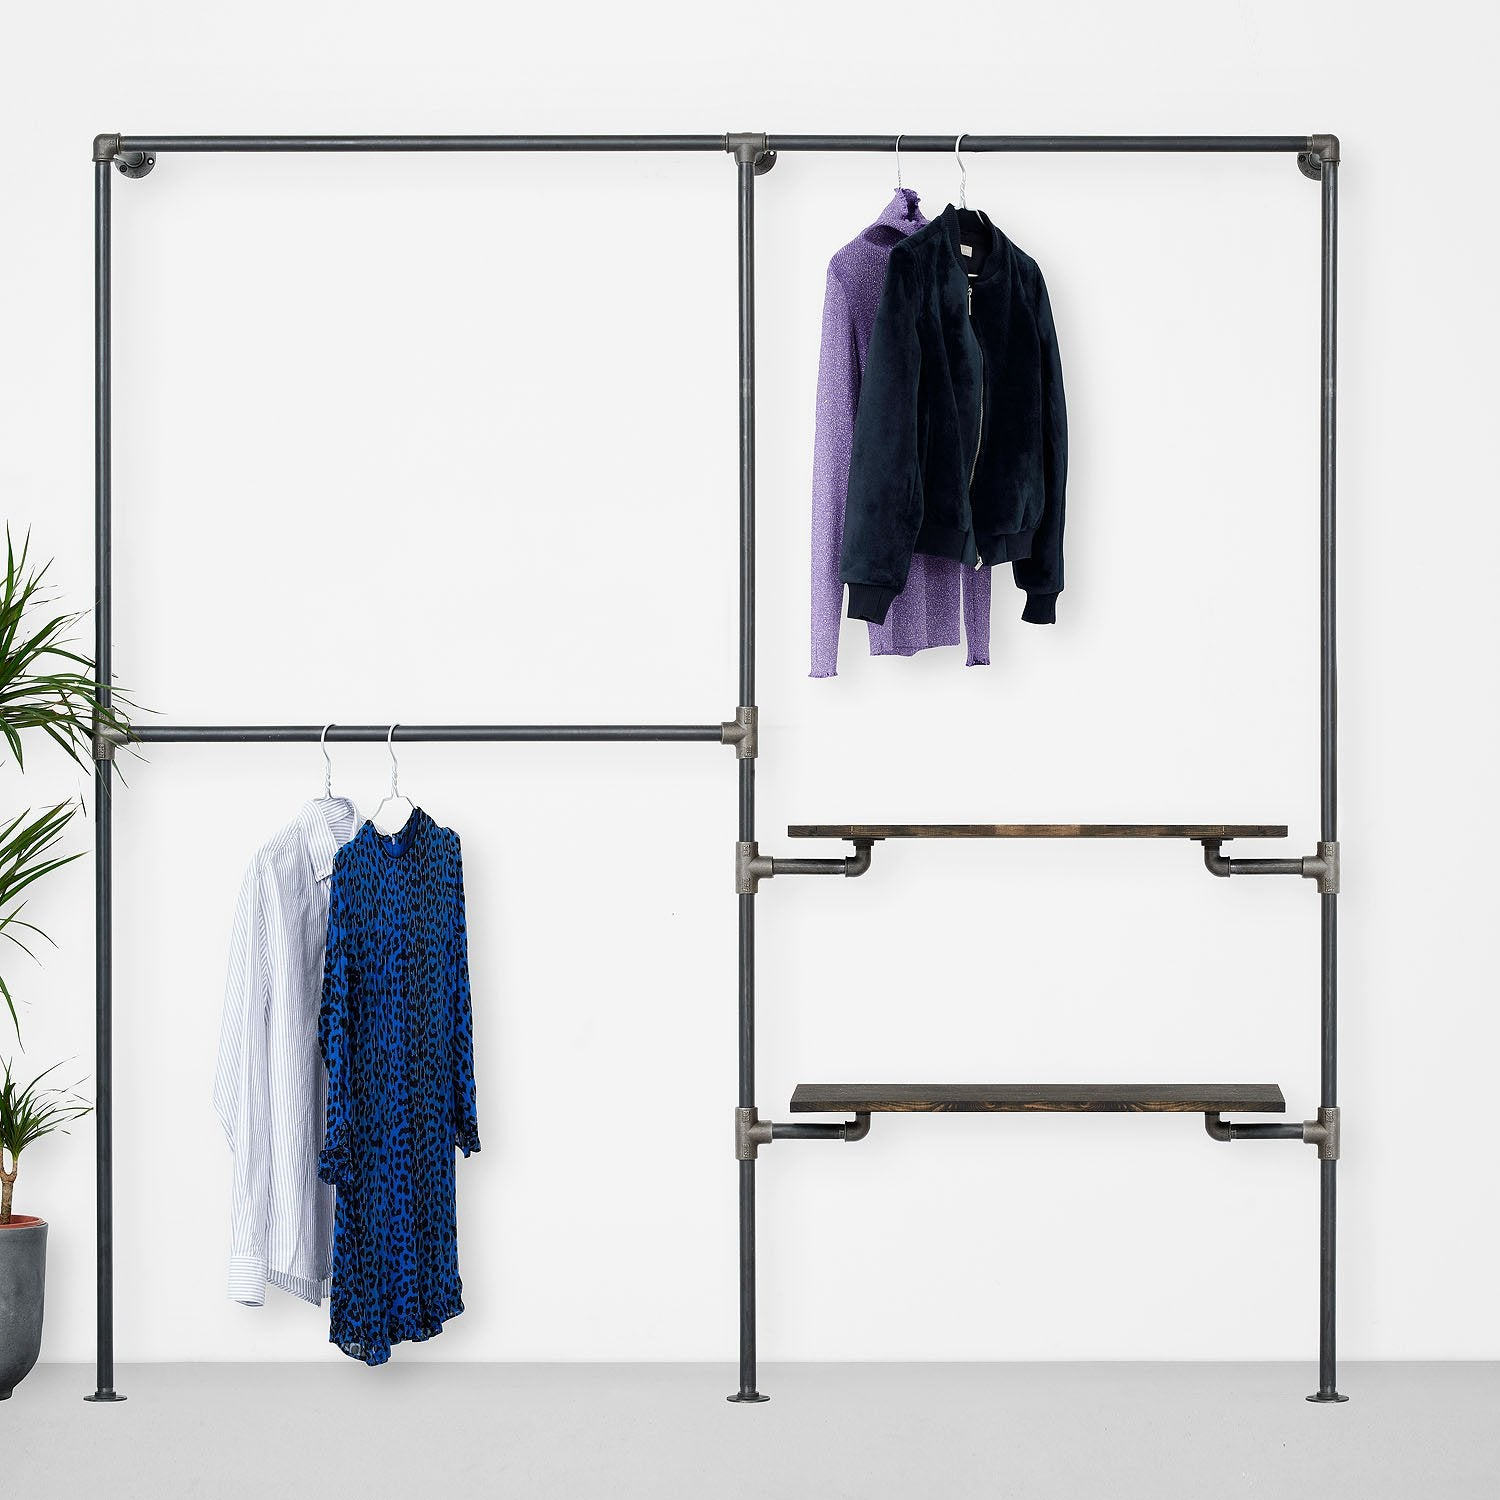 The Walk-In 2 row wardrobe system - 2 rails/ 1 rail & 2 shelves